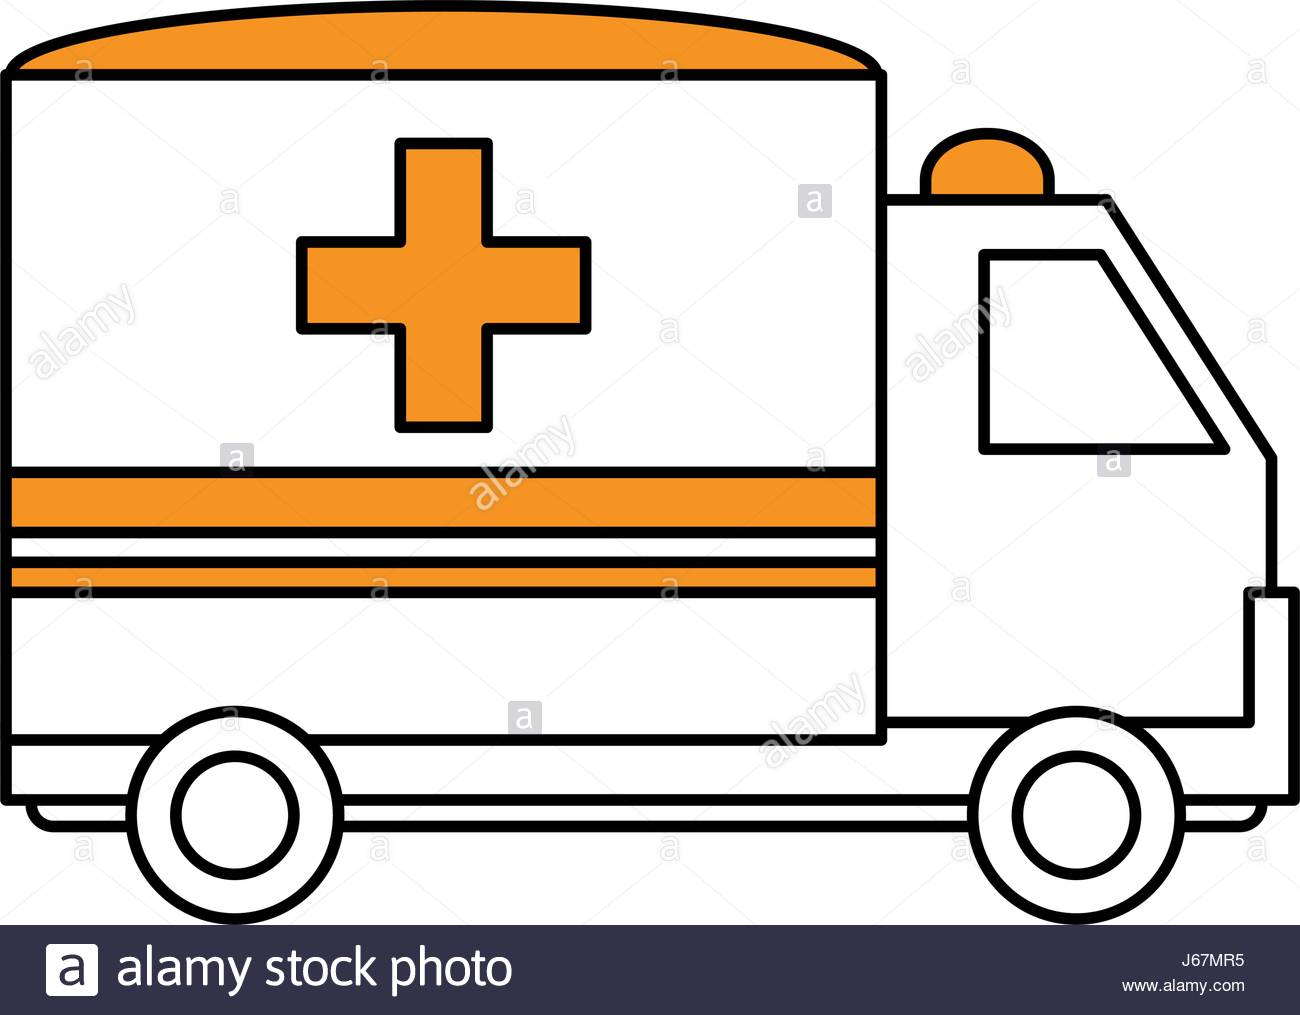 1300x1015 Color Silhouette Image Cartoon Ambulance Truck With Cross Symbol